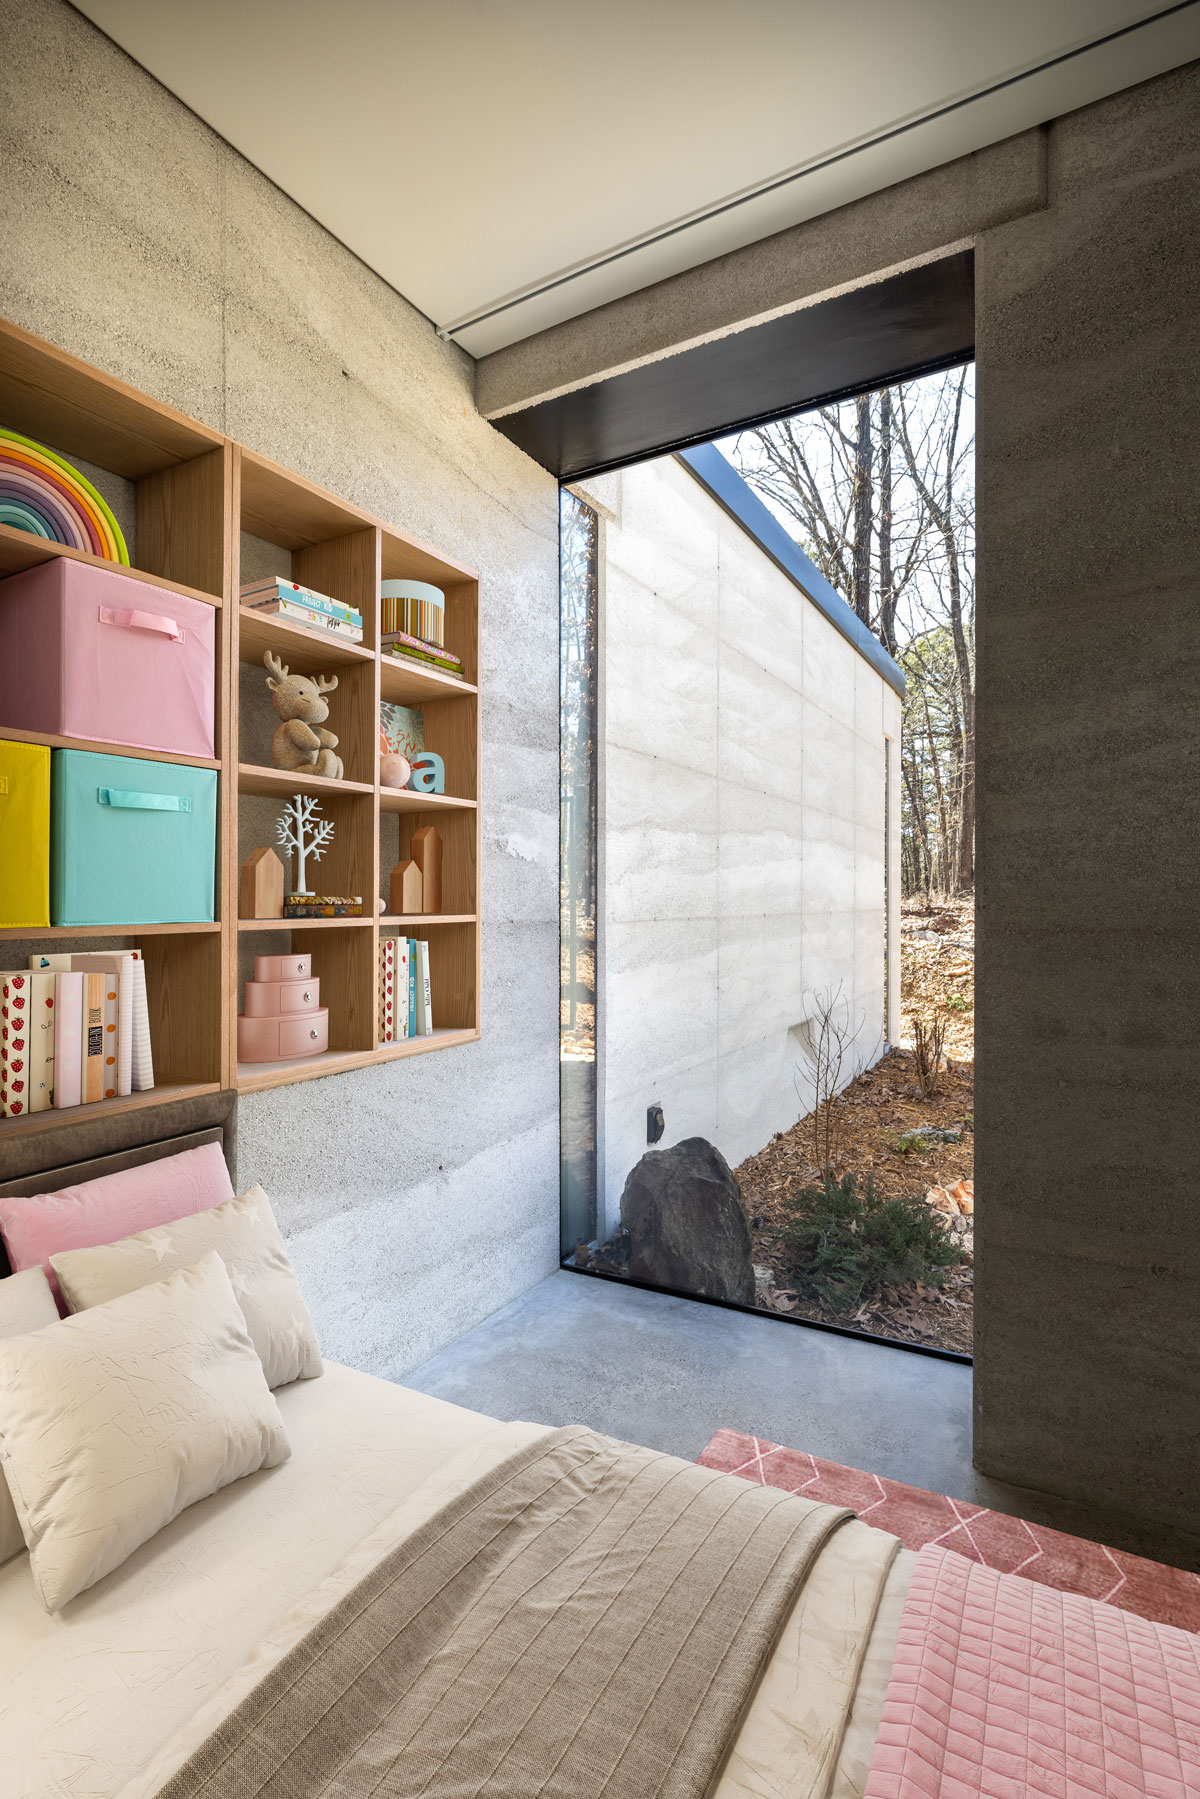 A large glass window blurs the line between interior and exterior spaces in this modern rammed earth cabin located in Eureka Springs, AR, USA